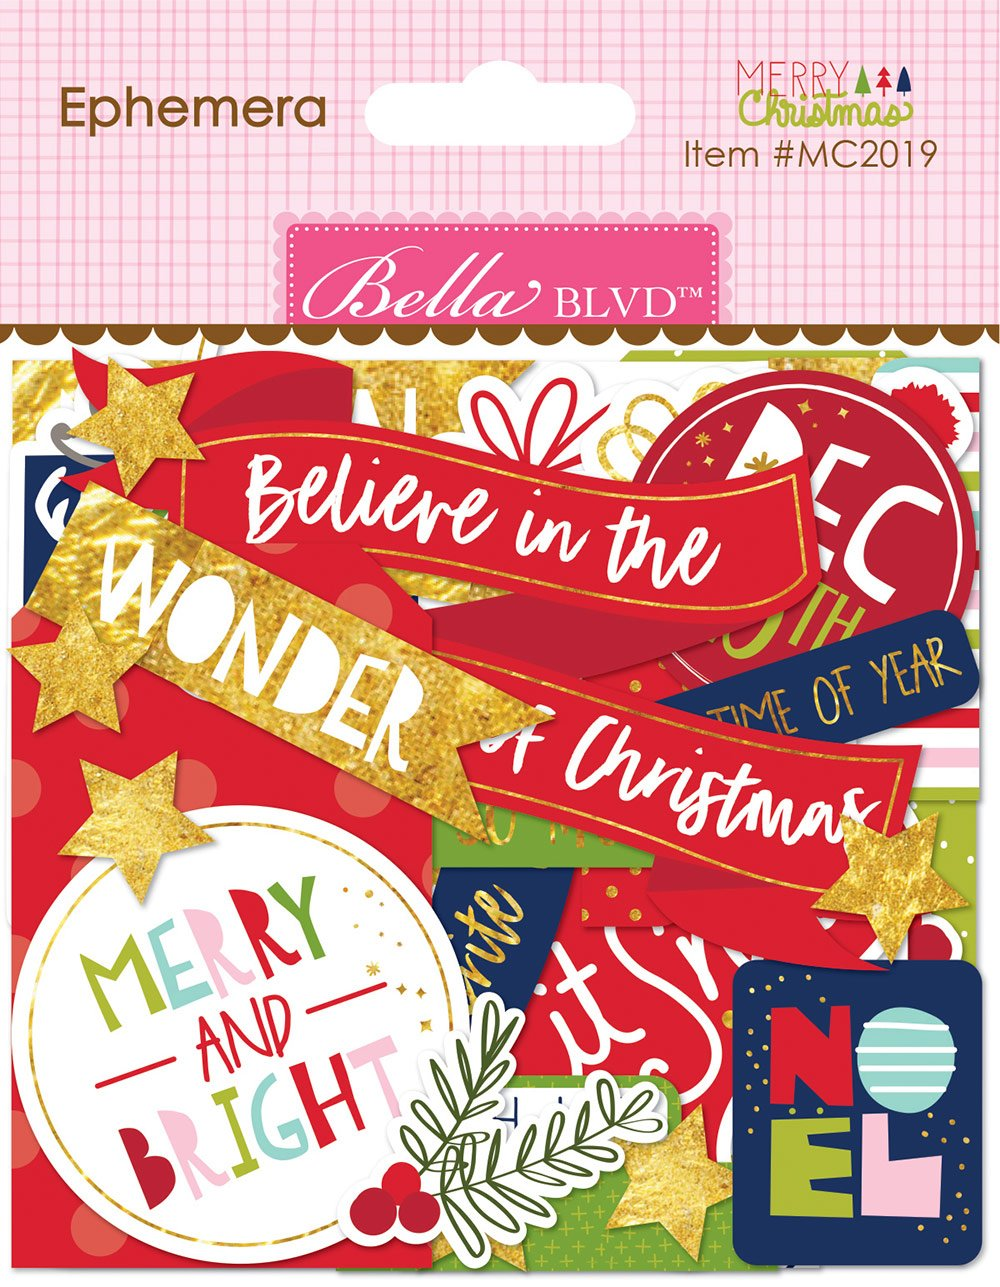 Bella Blvd - Merry Christmas - Ephemera Words with Gold Foil